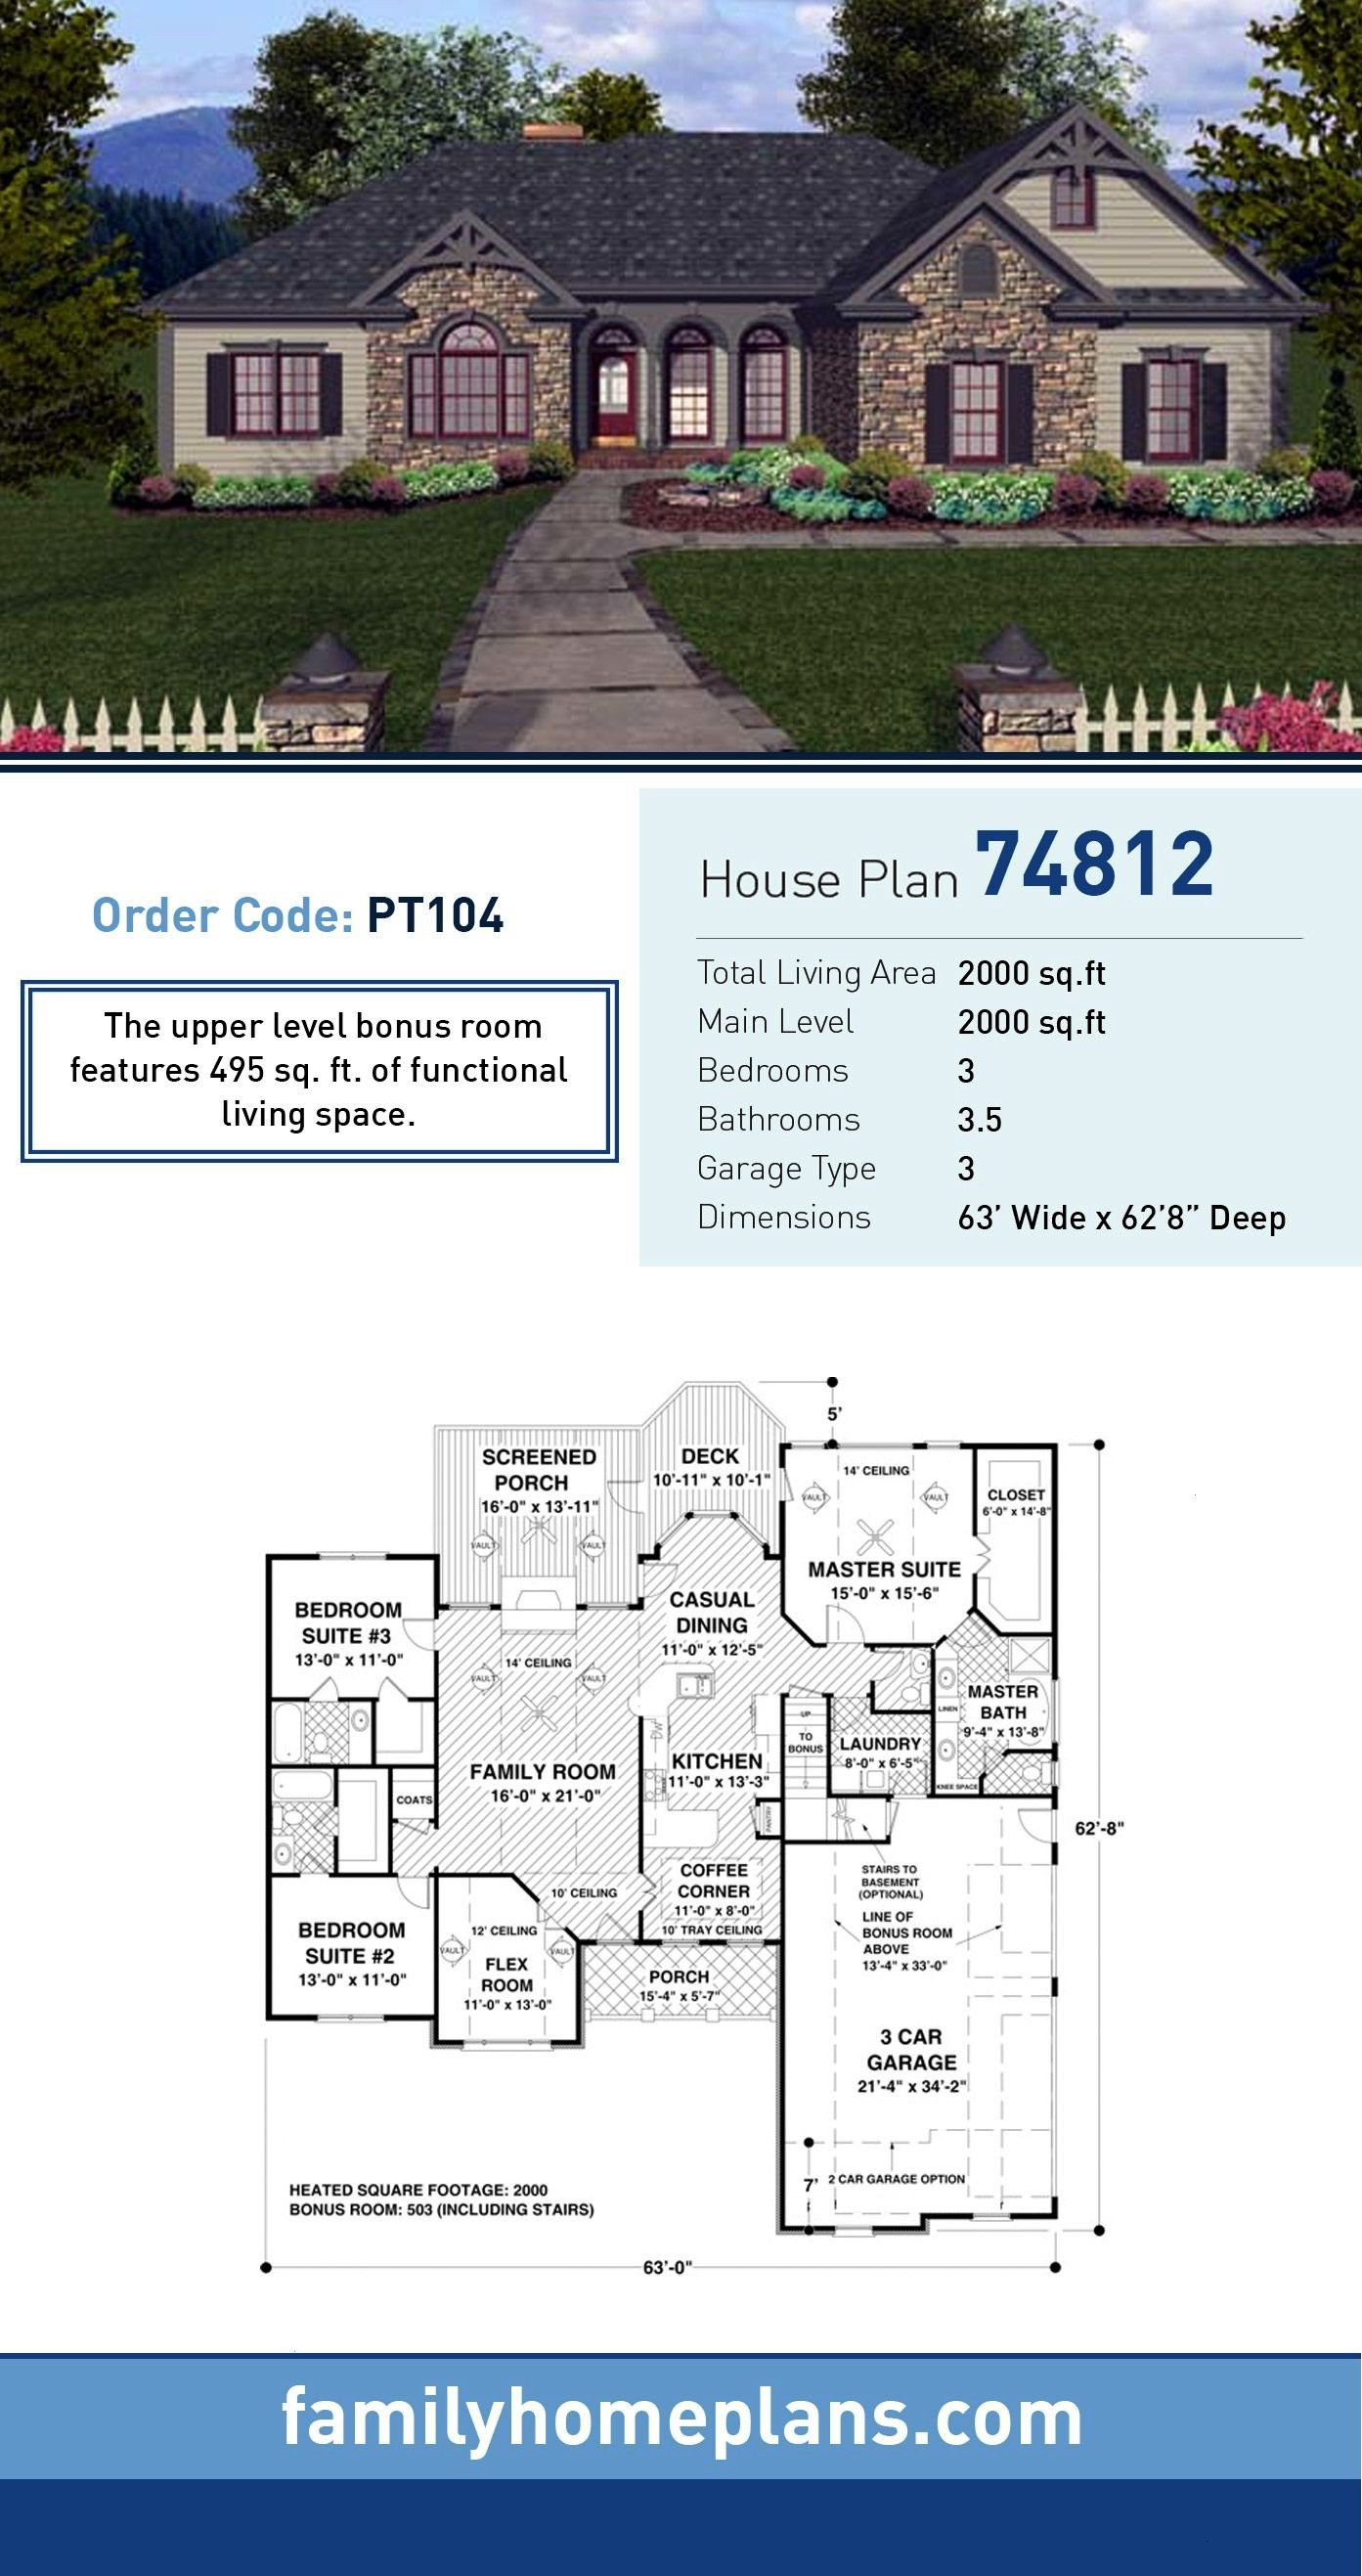 House Plan 74812  Total Living Area 2000 SQ FT 3 bedrooms and 35 bathrooms The upper level bonus room features 495 SQ FT of functional living spaceCraftsman House Plan 74...